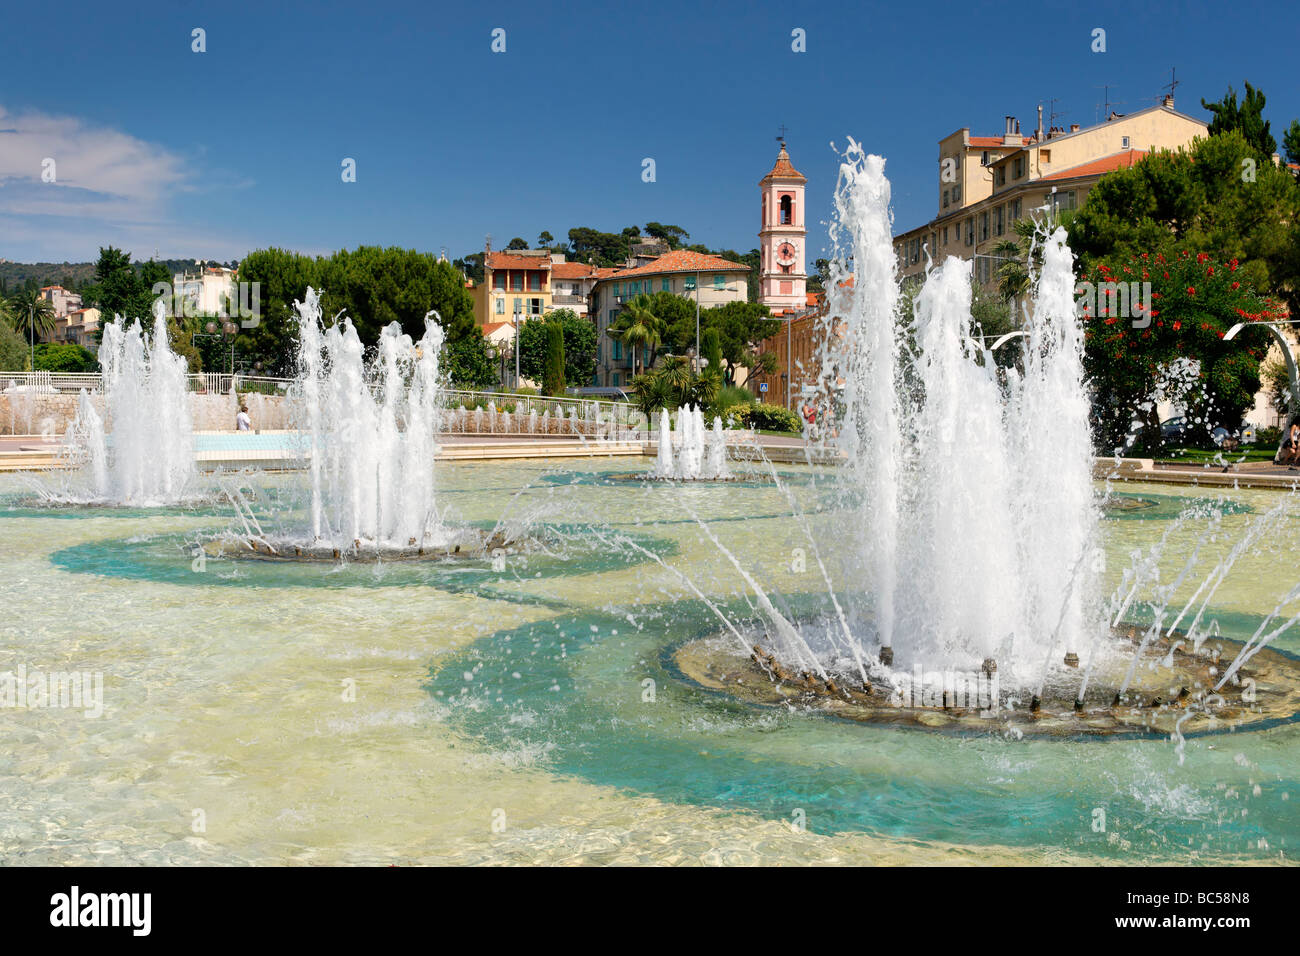 Fountains in Place Massena Nice - Stock Image